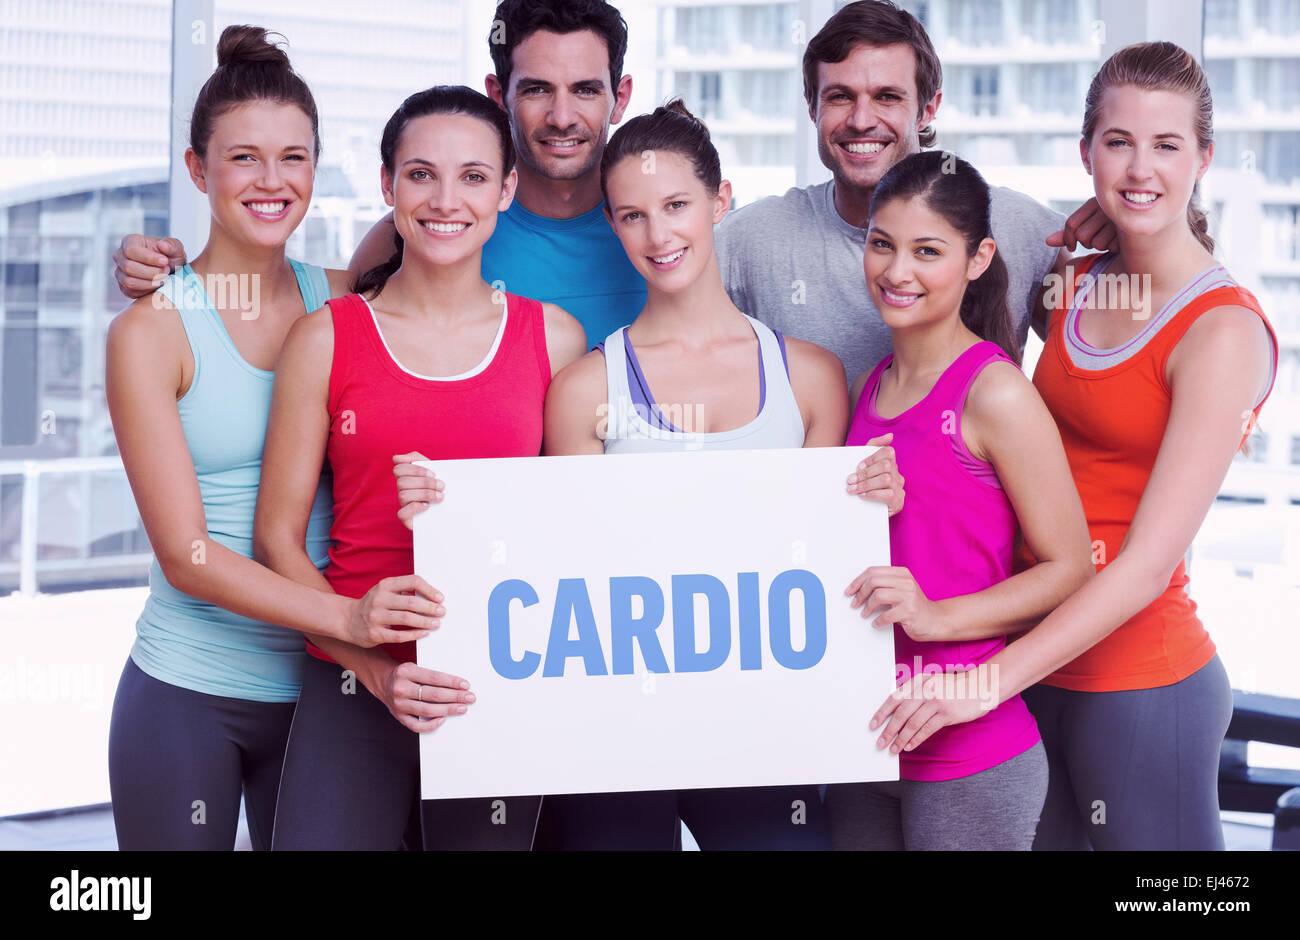 Cardio against fit smiling people holding blank board - Stock Image